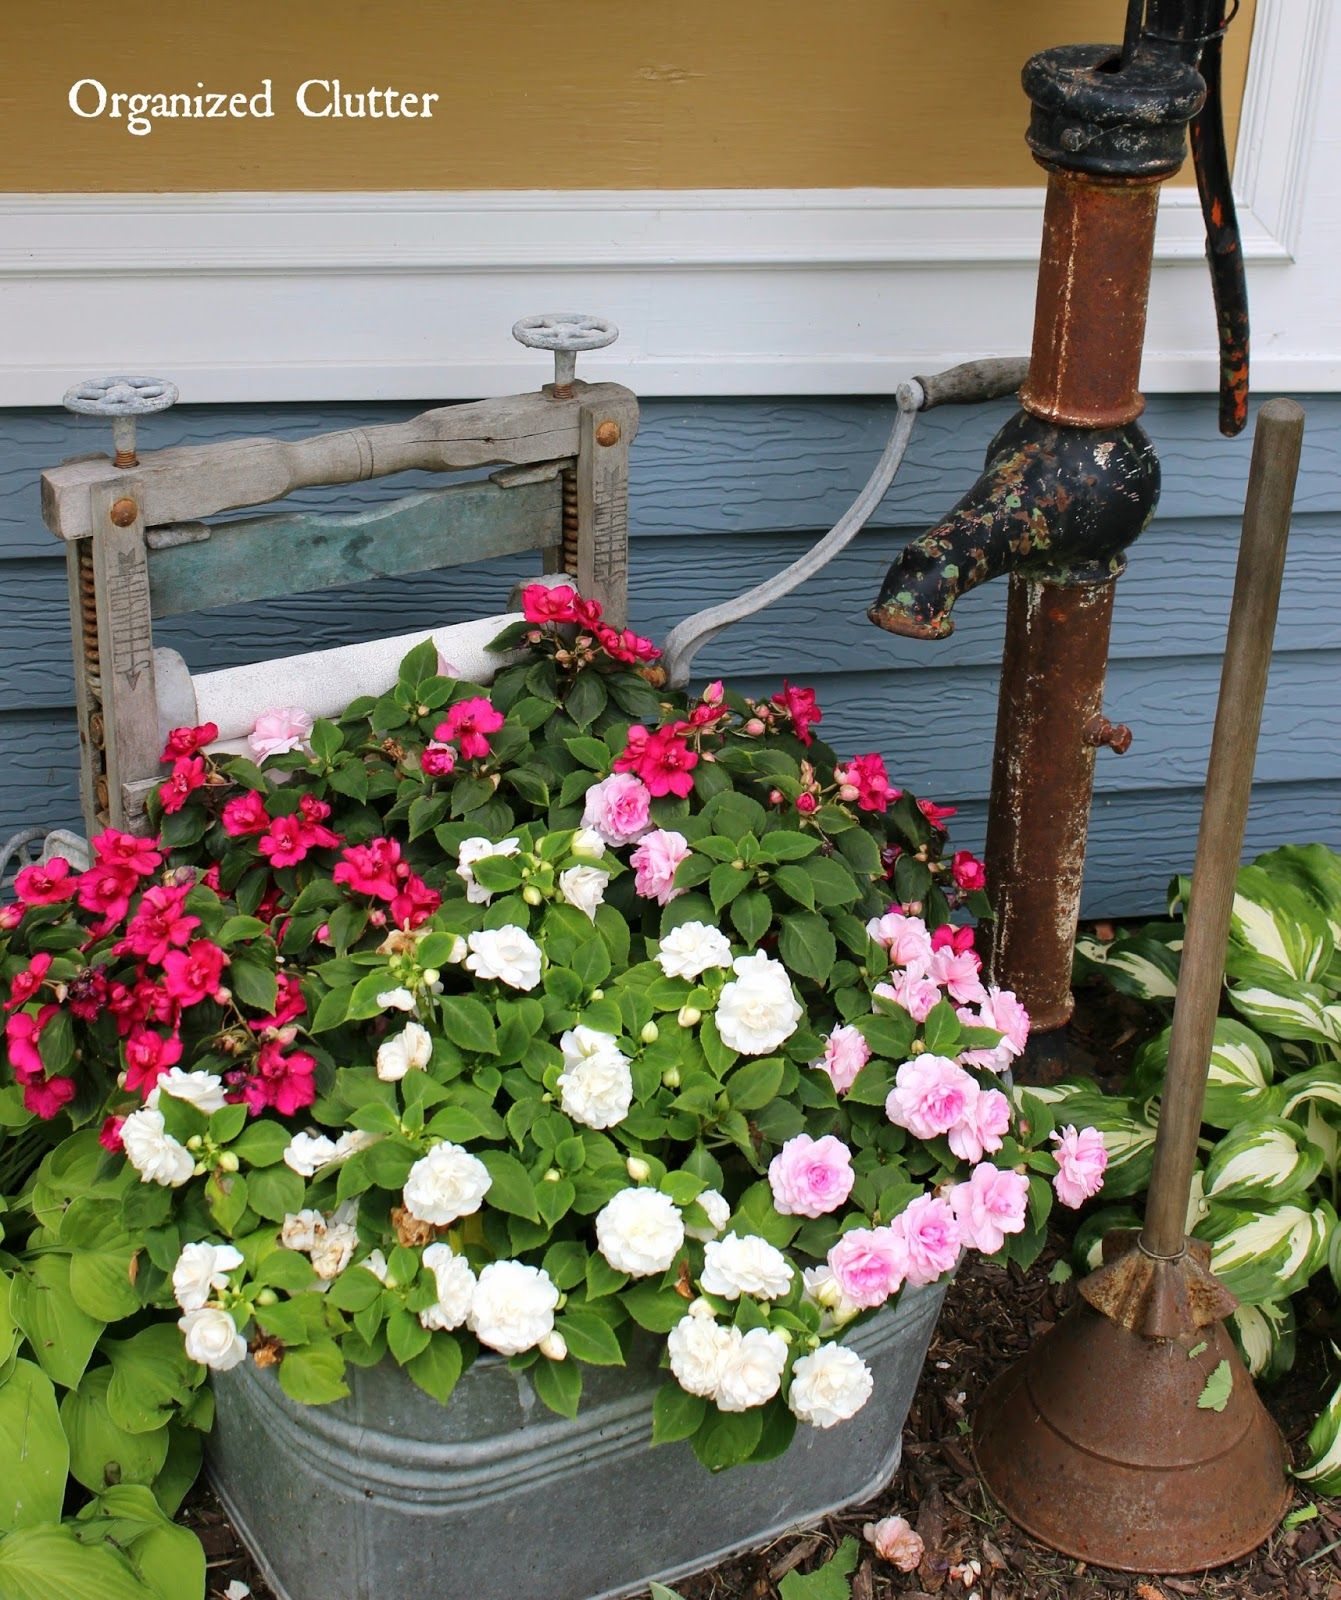 Beautiful Flowers In Junky Containers Organized Clutter